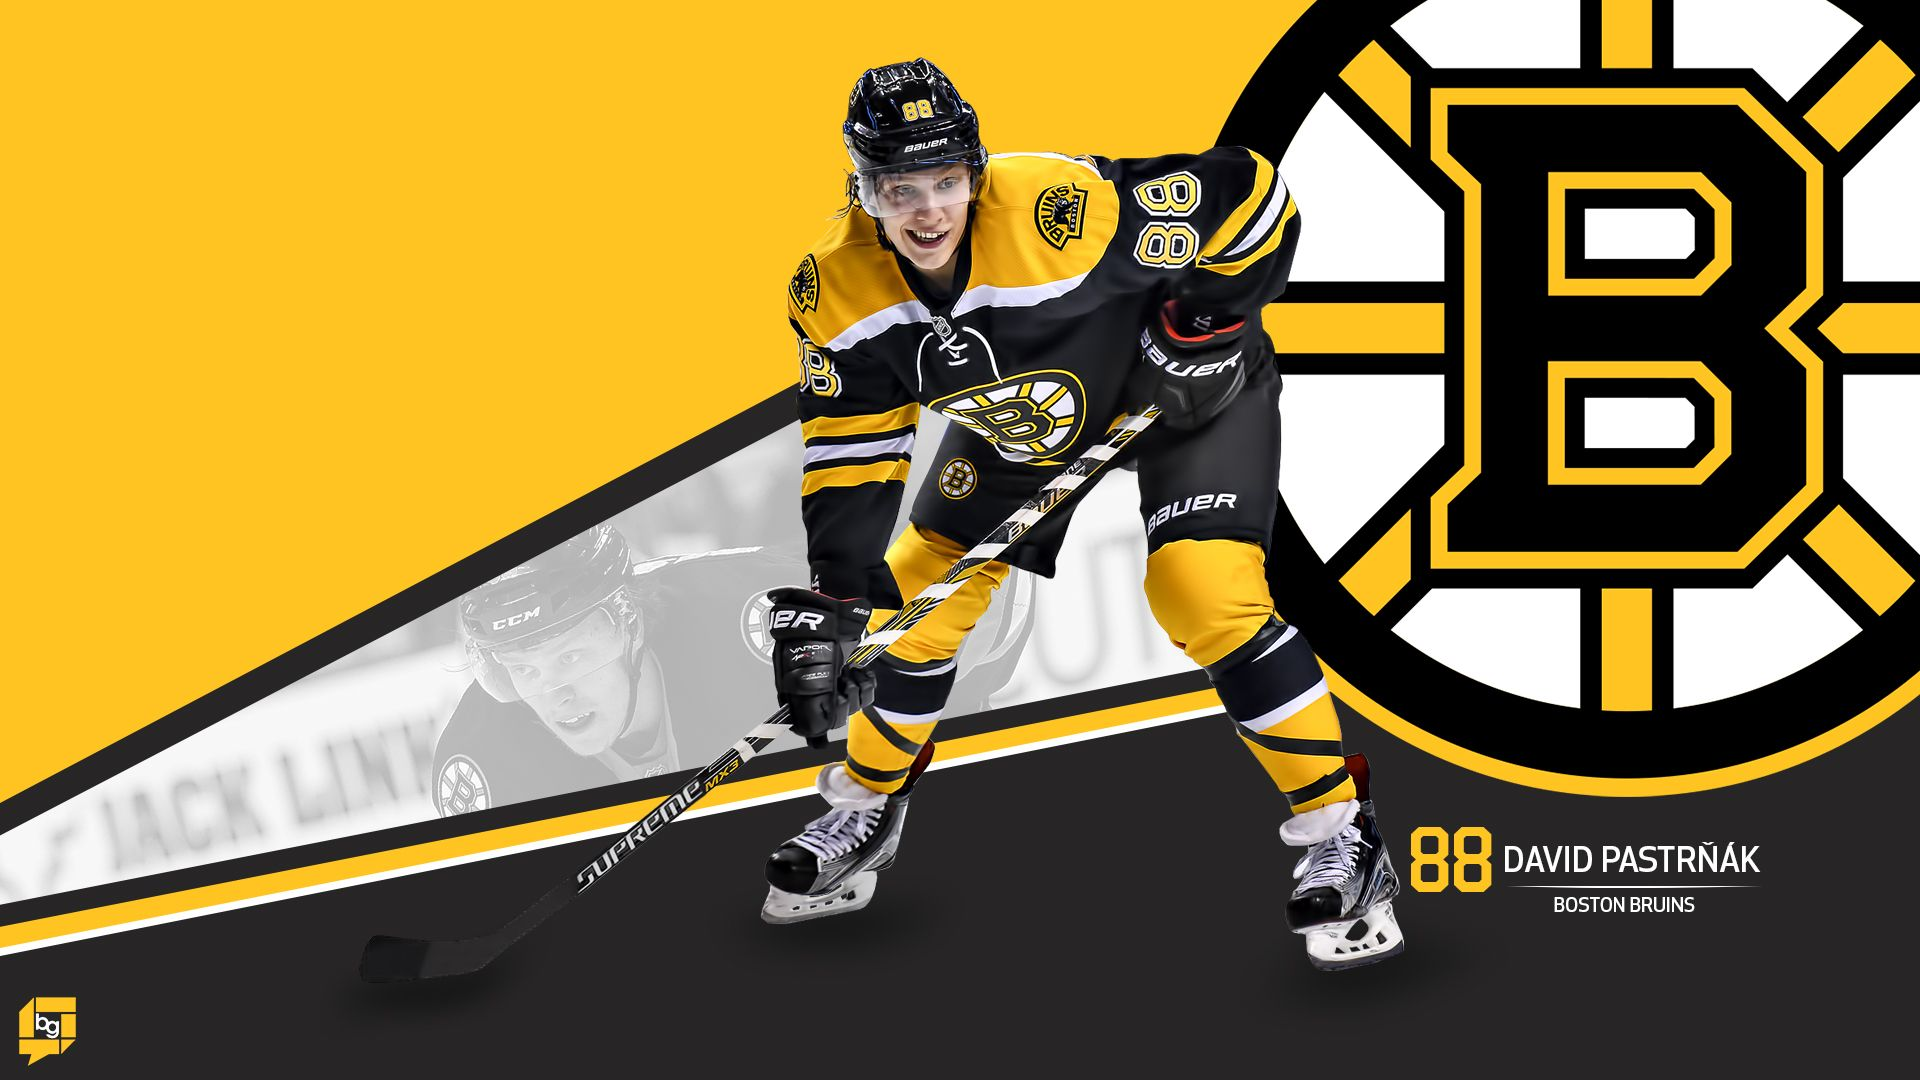 Boston Bruins Wallpaper Free Download a Pinterest